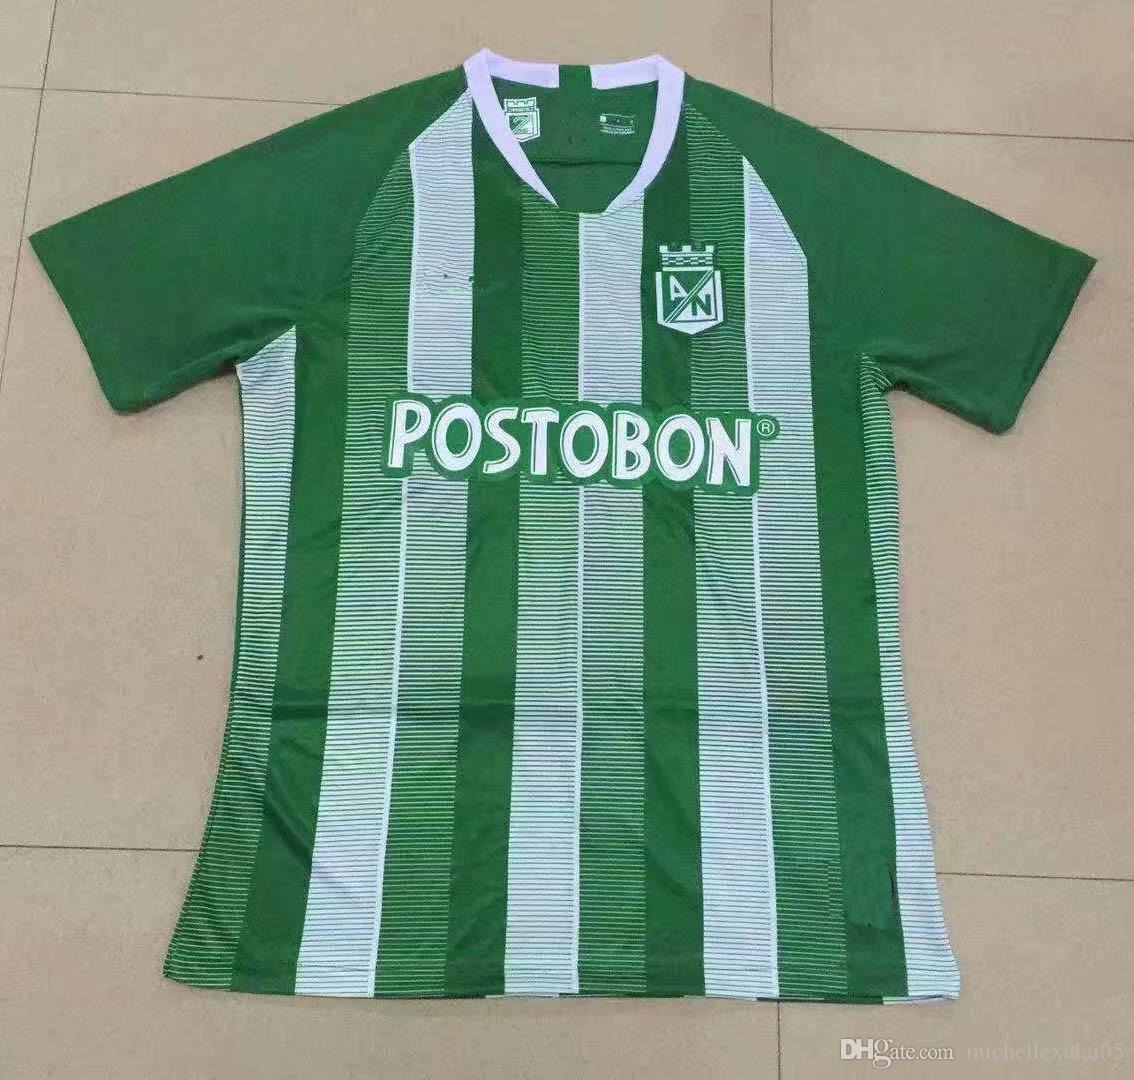 19 20 Atletico Nacional Medellin Soccer Jersey Colombia Club Medellin Home  Green Football Tops Short Sleeve Sports Uniform Football Shirt Canada 2019  From ... 7e47e6164